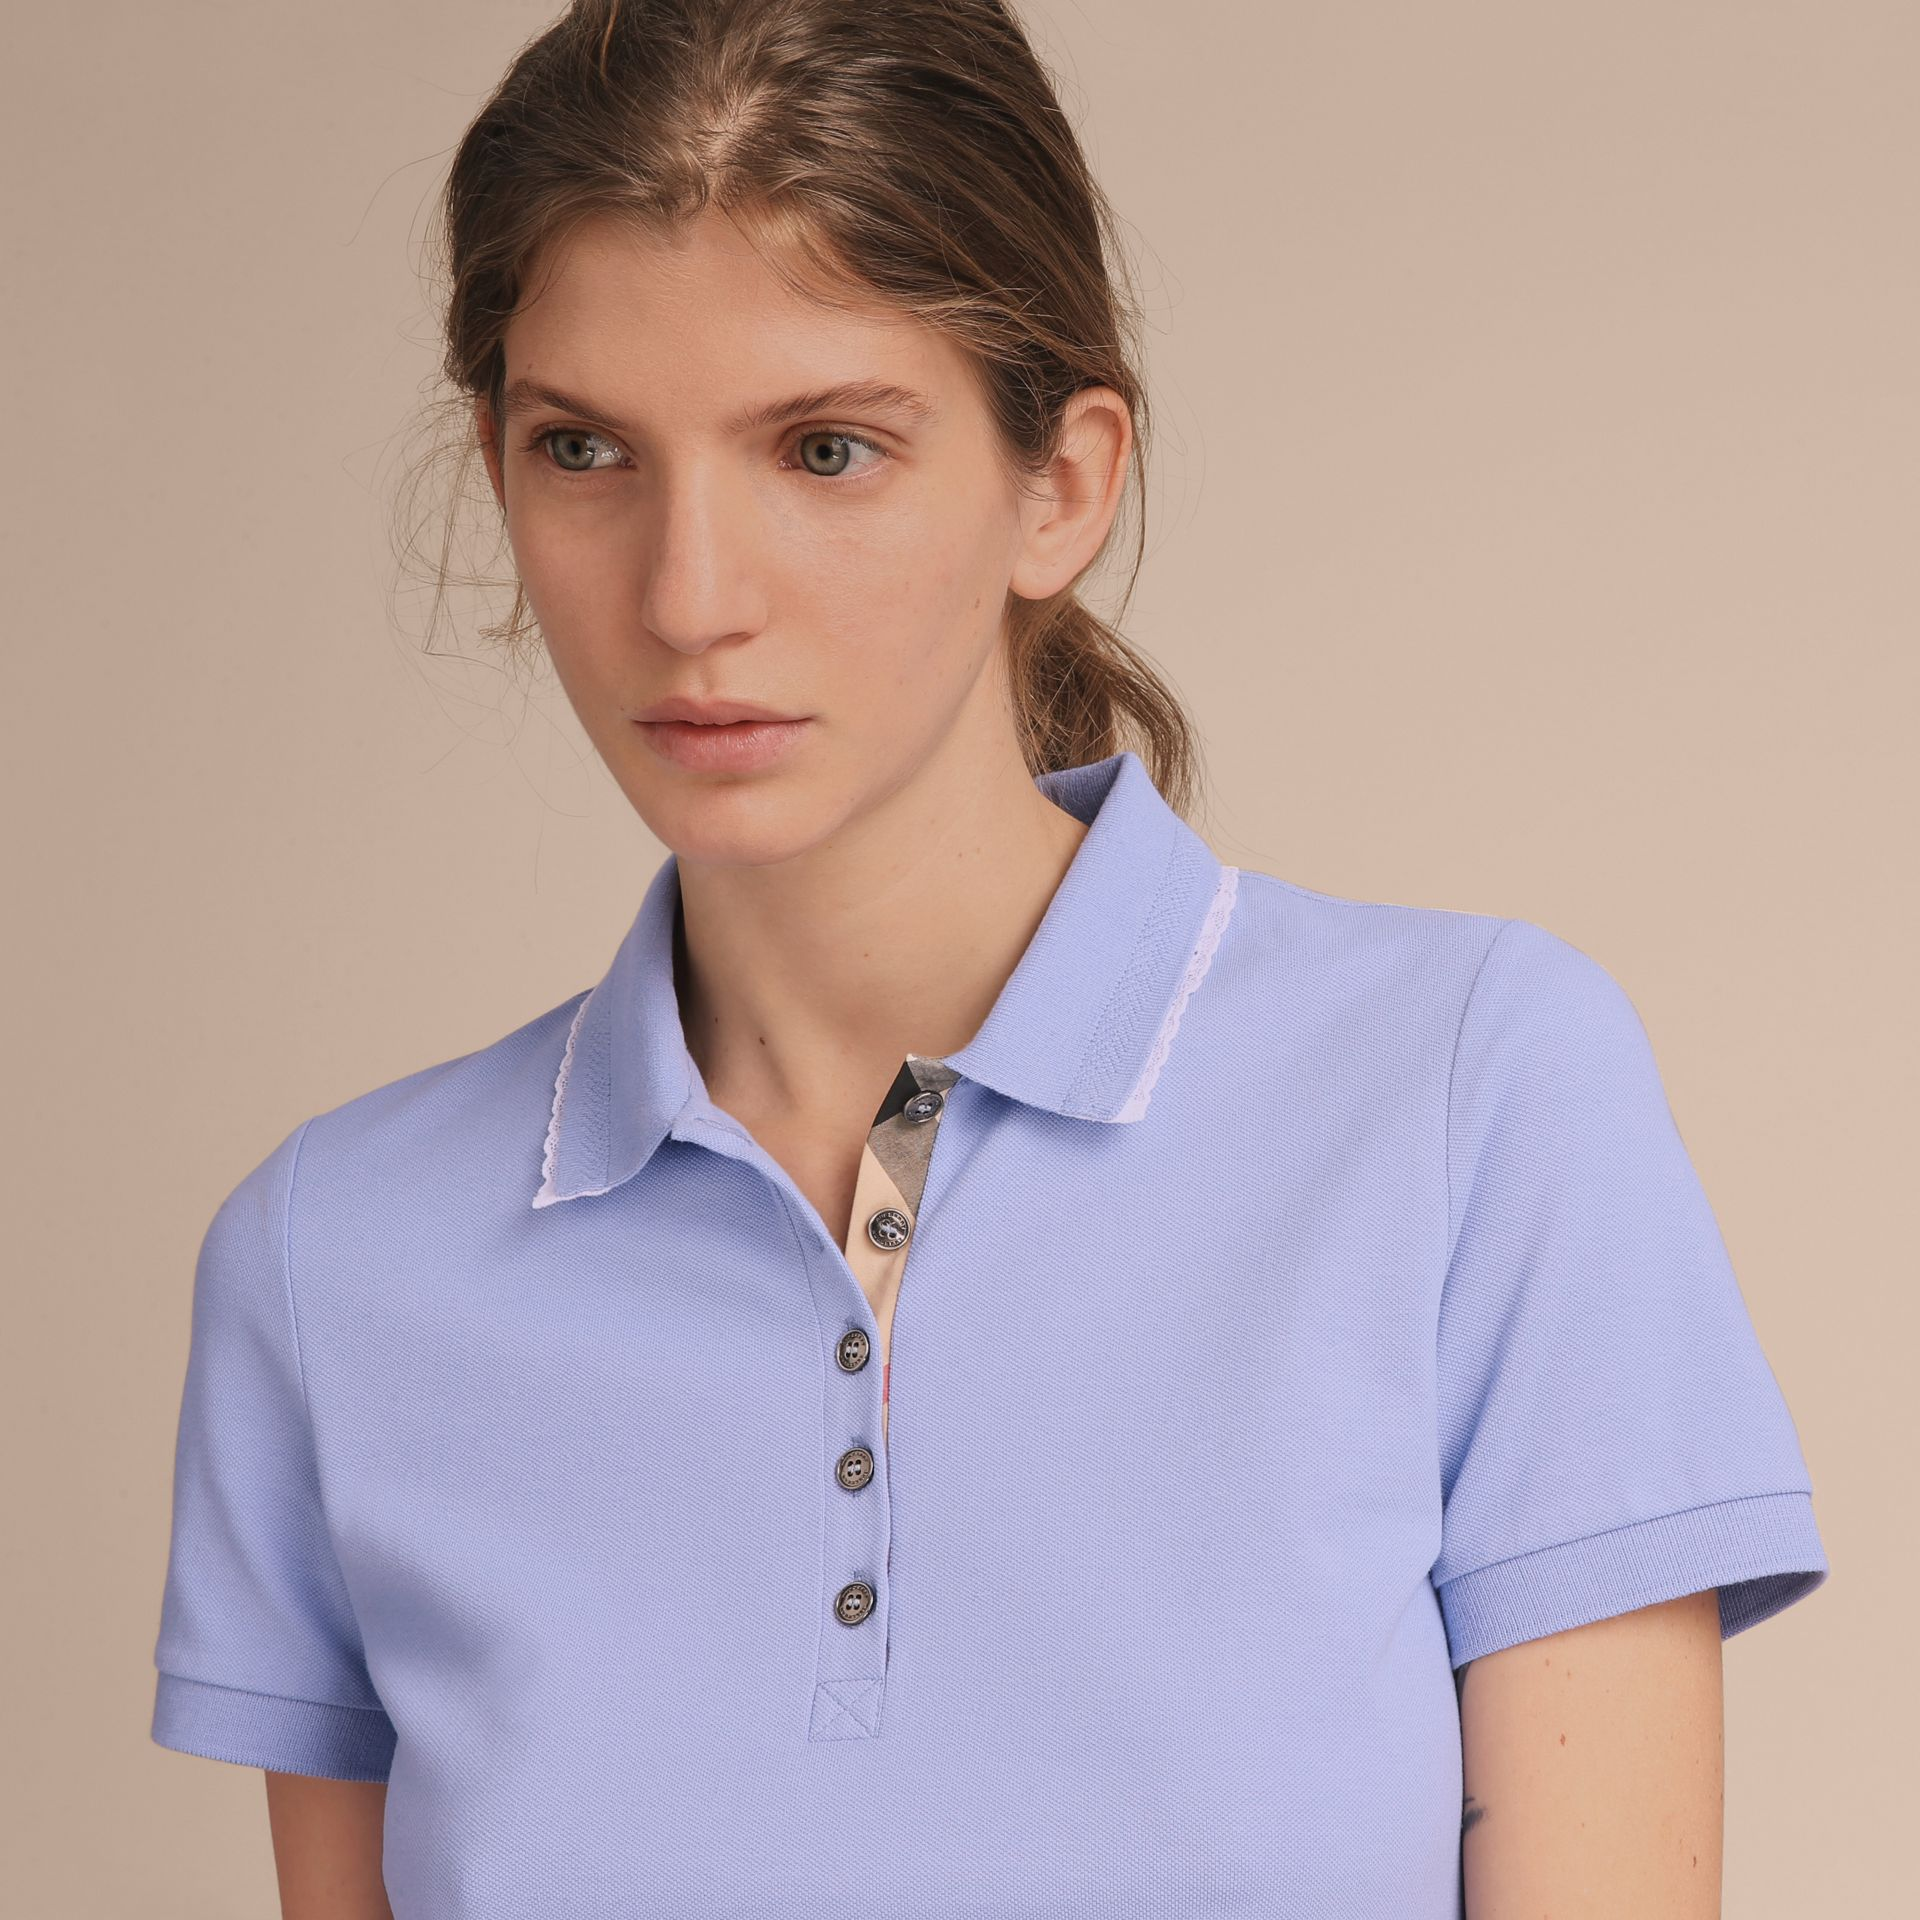 Lace Trim Cotton Blend Polo Shirt with Check Detail in Pale Cornflower Blue - Women | Burberry - gallery image 6